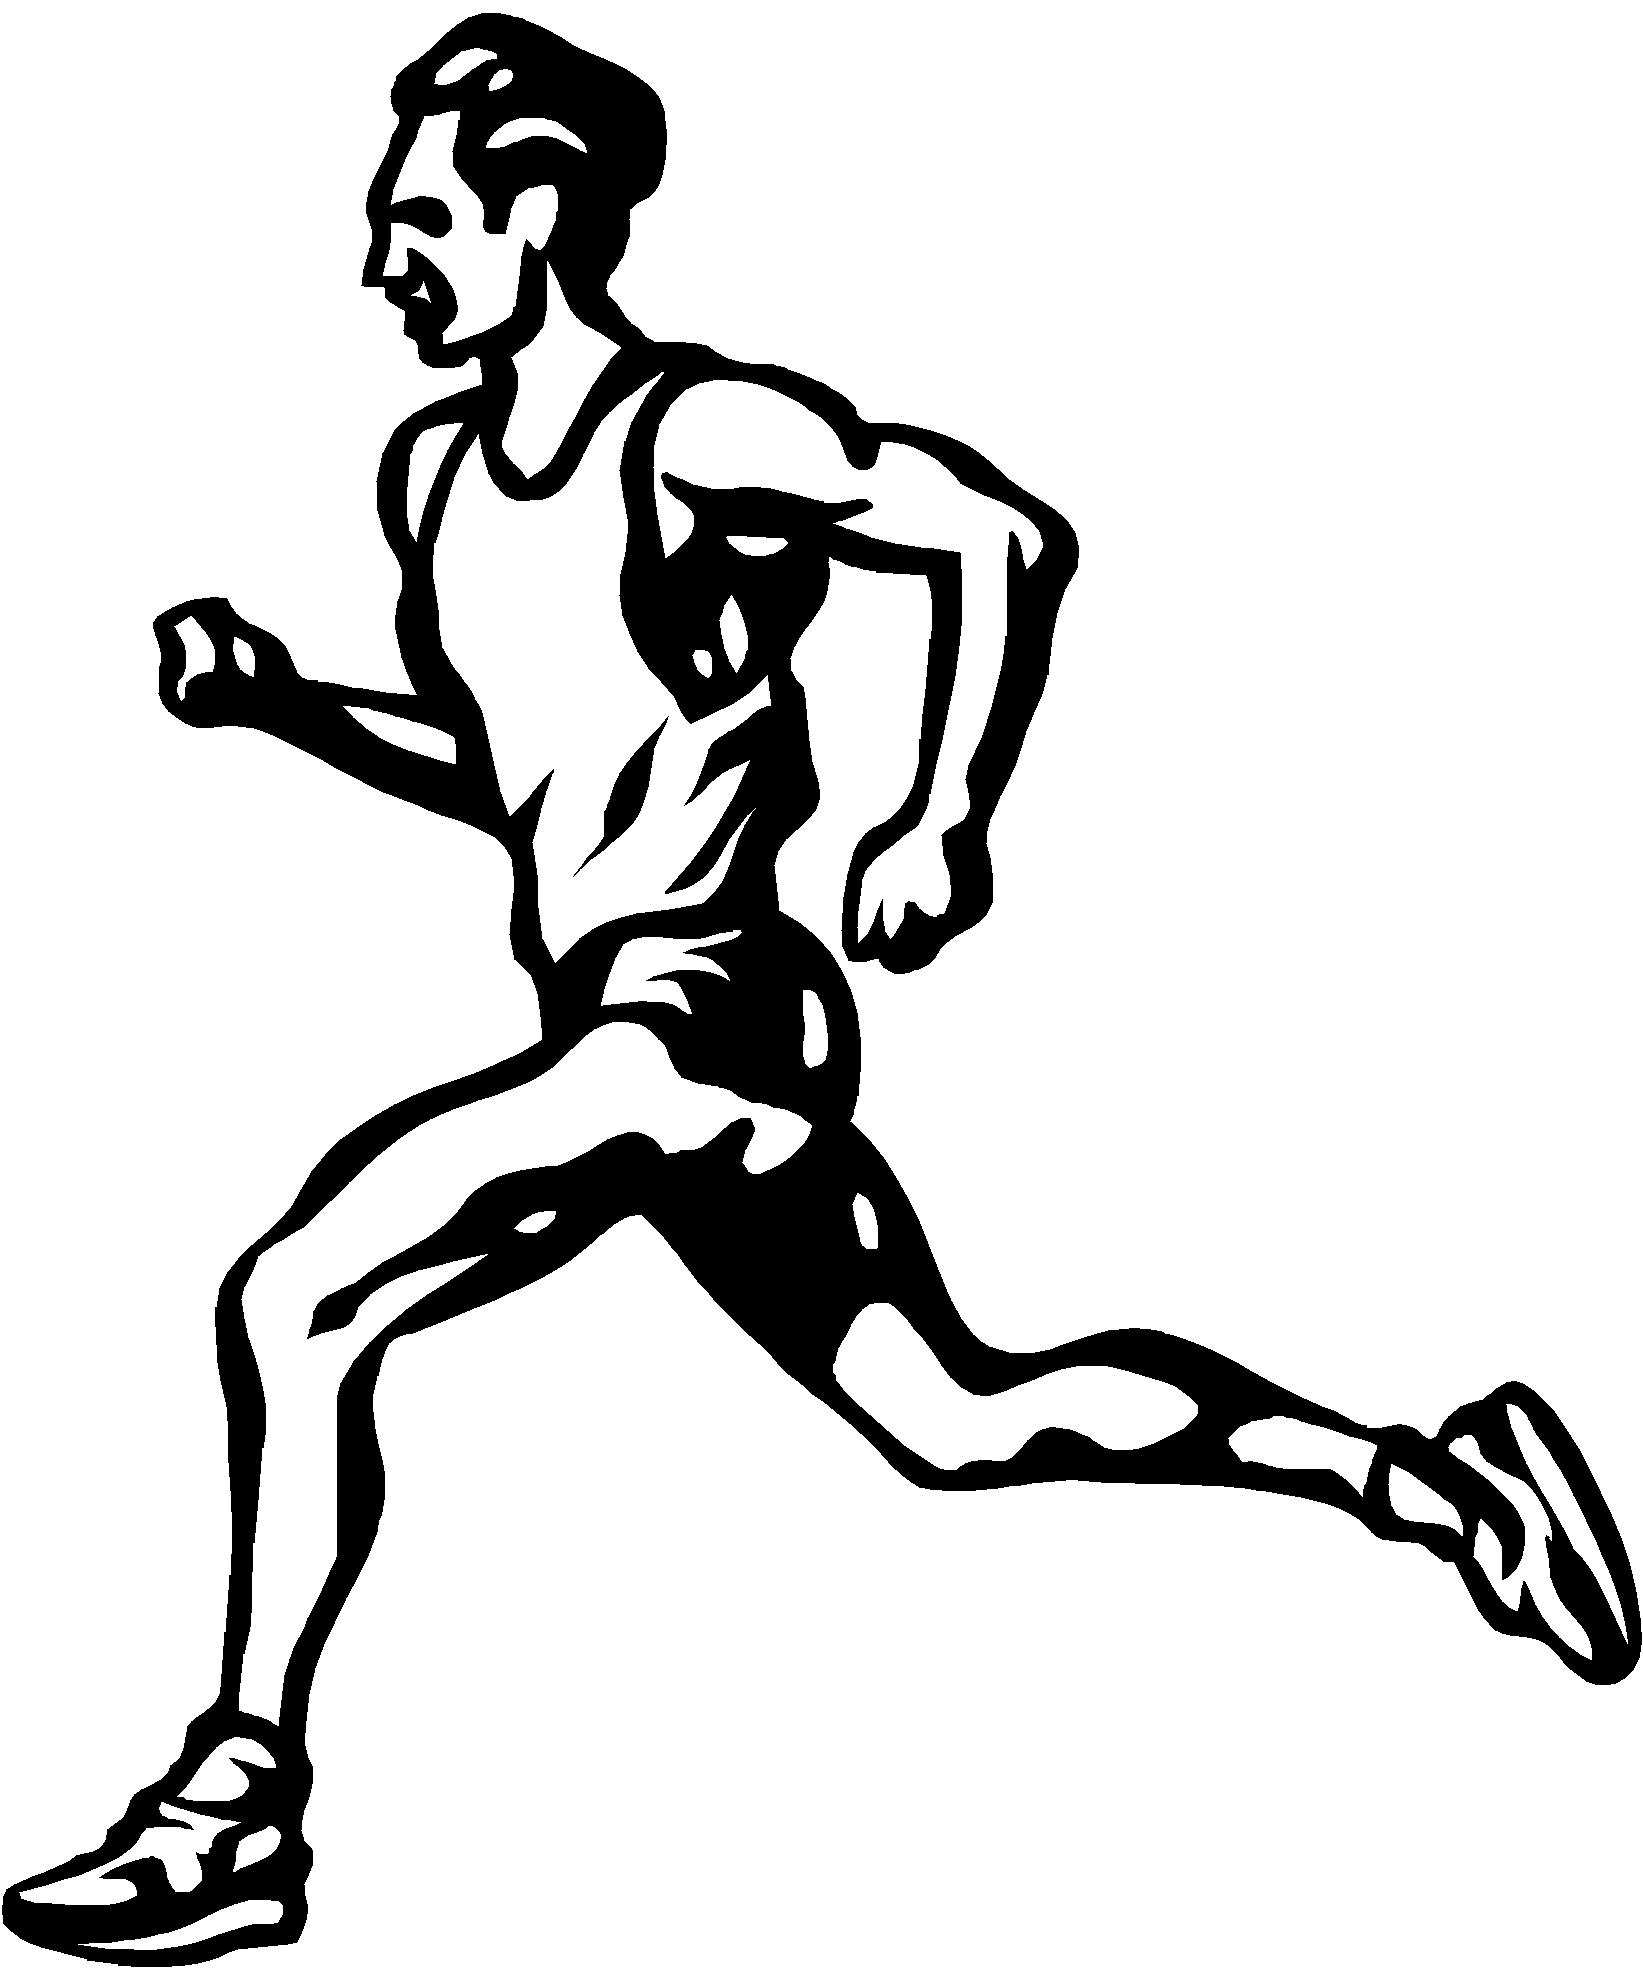 runner drawing at getdrawings com free for personal use beer clipart black and white bear clipart black and white free